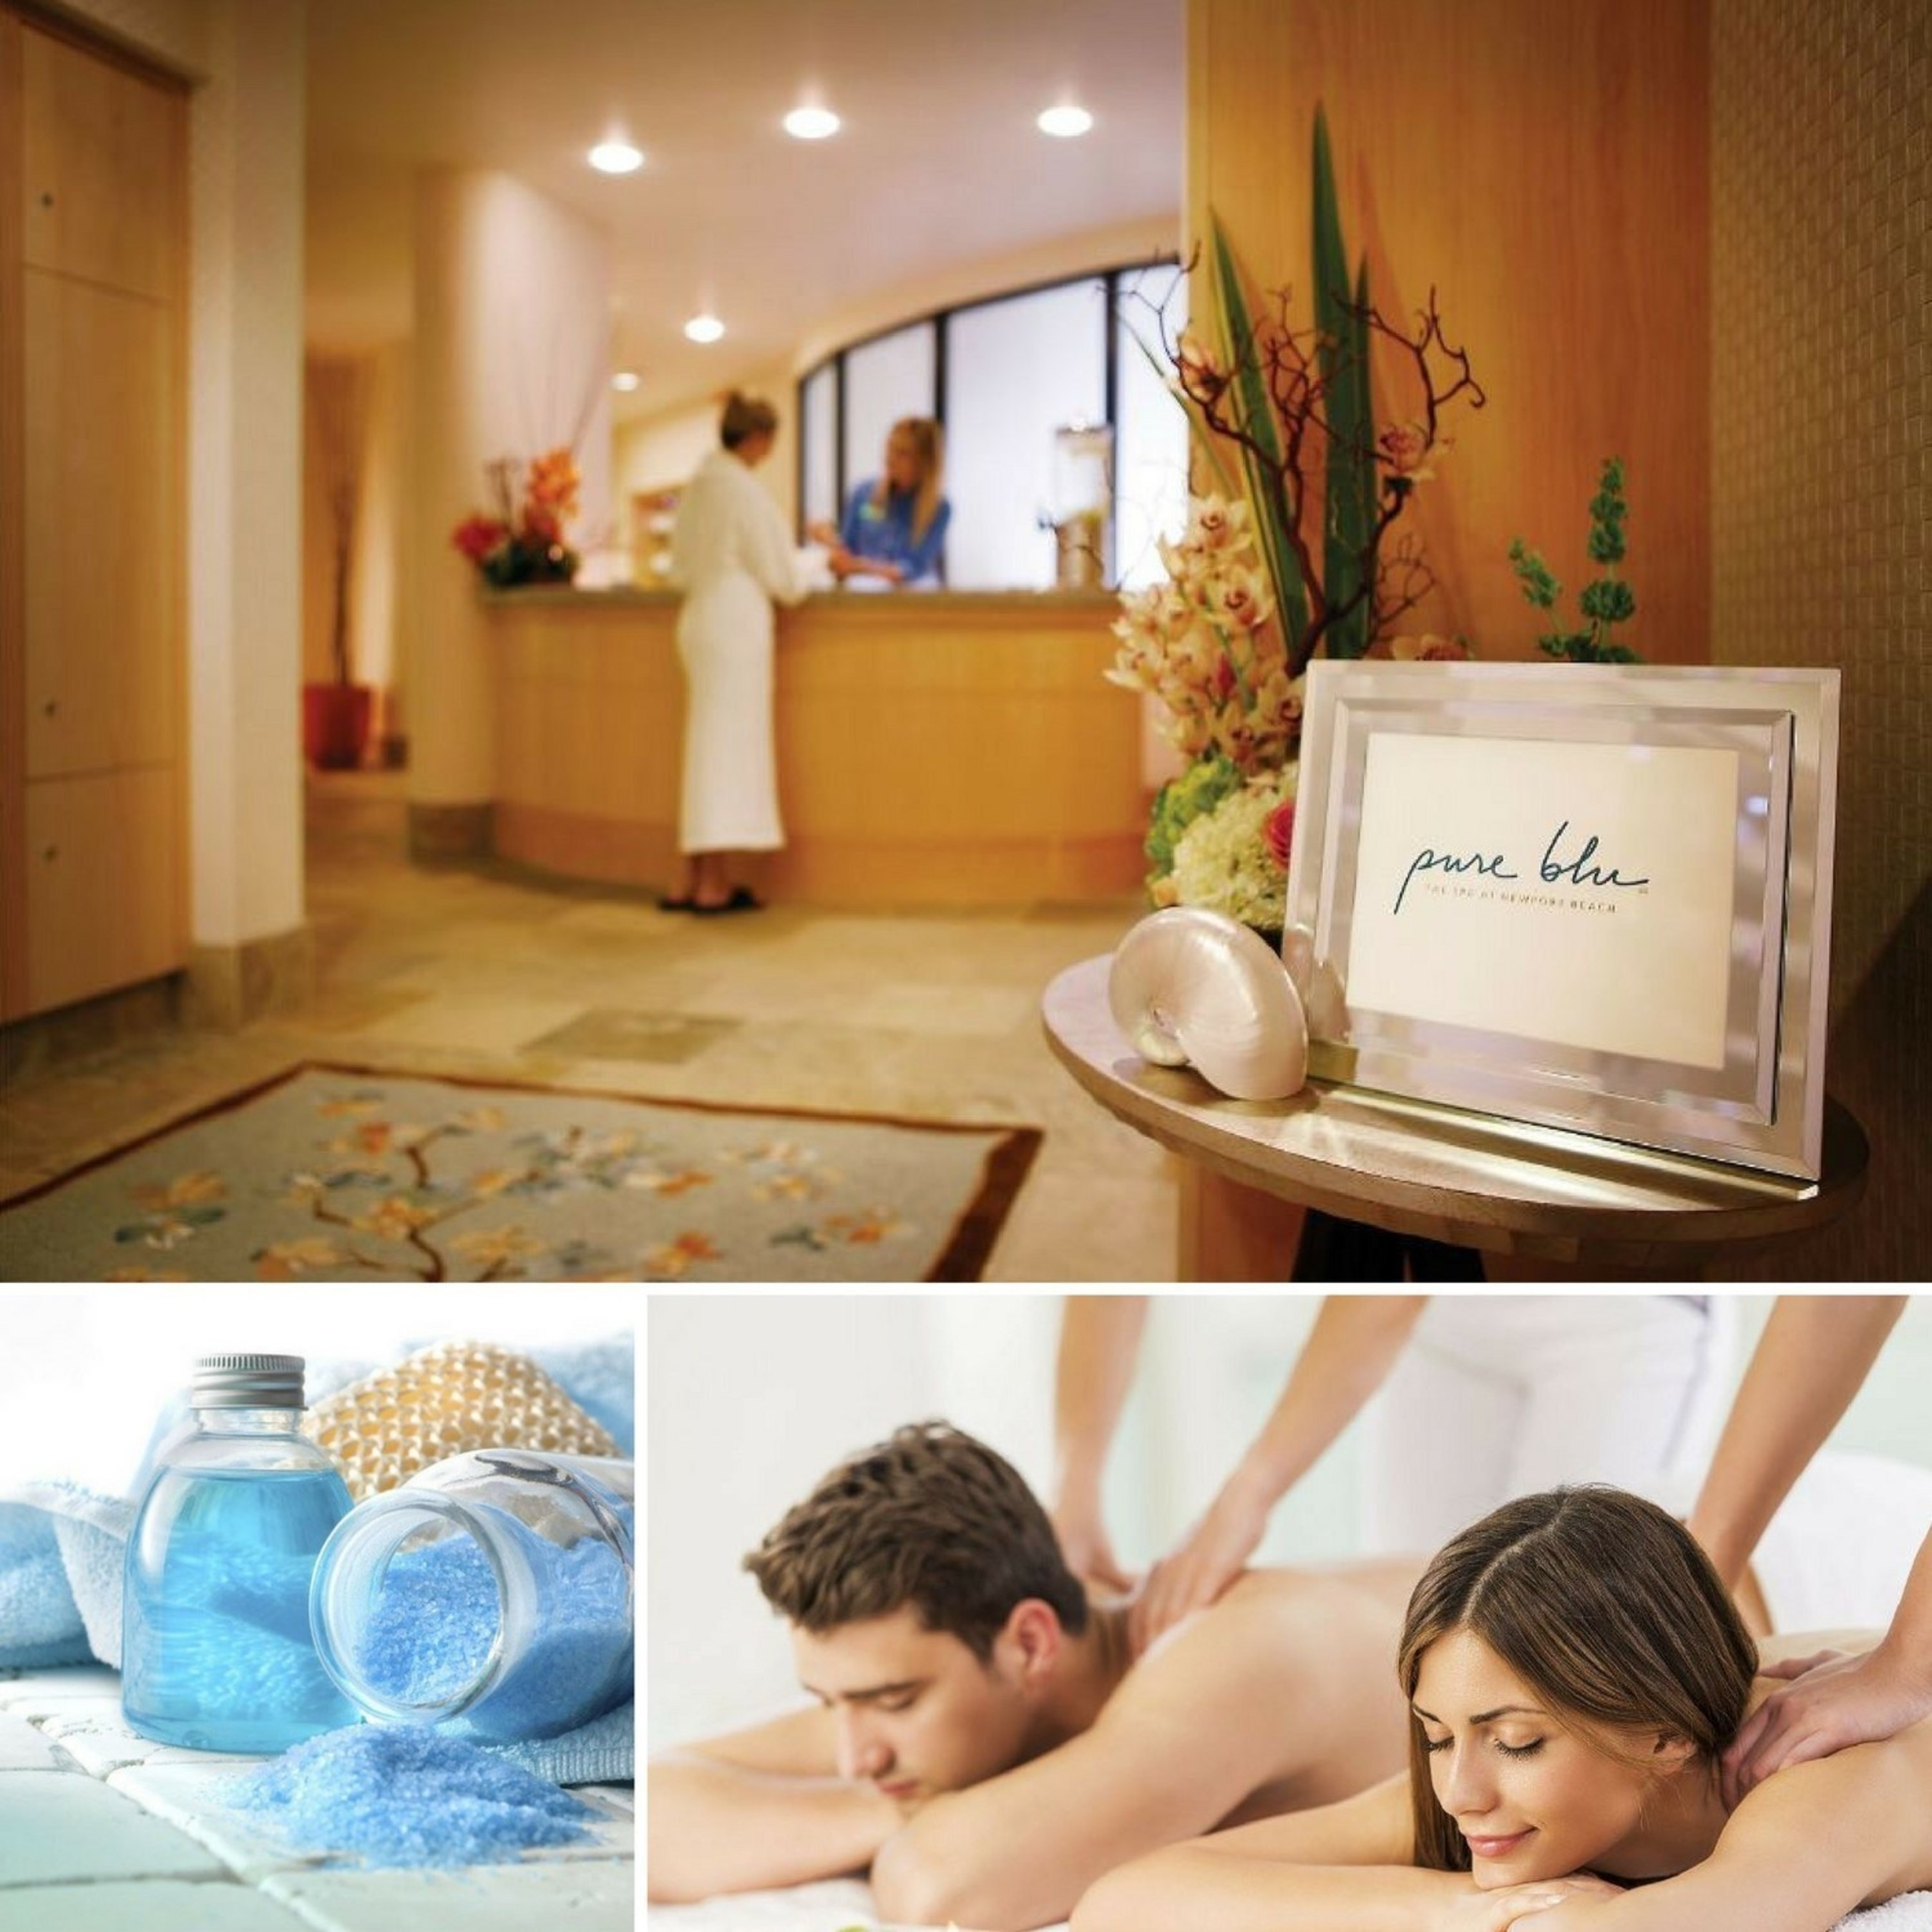 Pure Blu, the spa at Newport Beach Marriott Hotel, appreciates its Newport Beach neighbors and plans to extend an invitation to SoCal residents to take advantage of two special packages that will calm the holiday and aging blues. Whether utilizing the Coastal Locals Package or Celebrate at the Spa Package, guests will receive customized treatments at special savings. For information and to make an appointment, visit www.PureBluSpa.com now or call 1-949-720-7900.